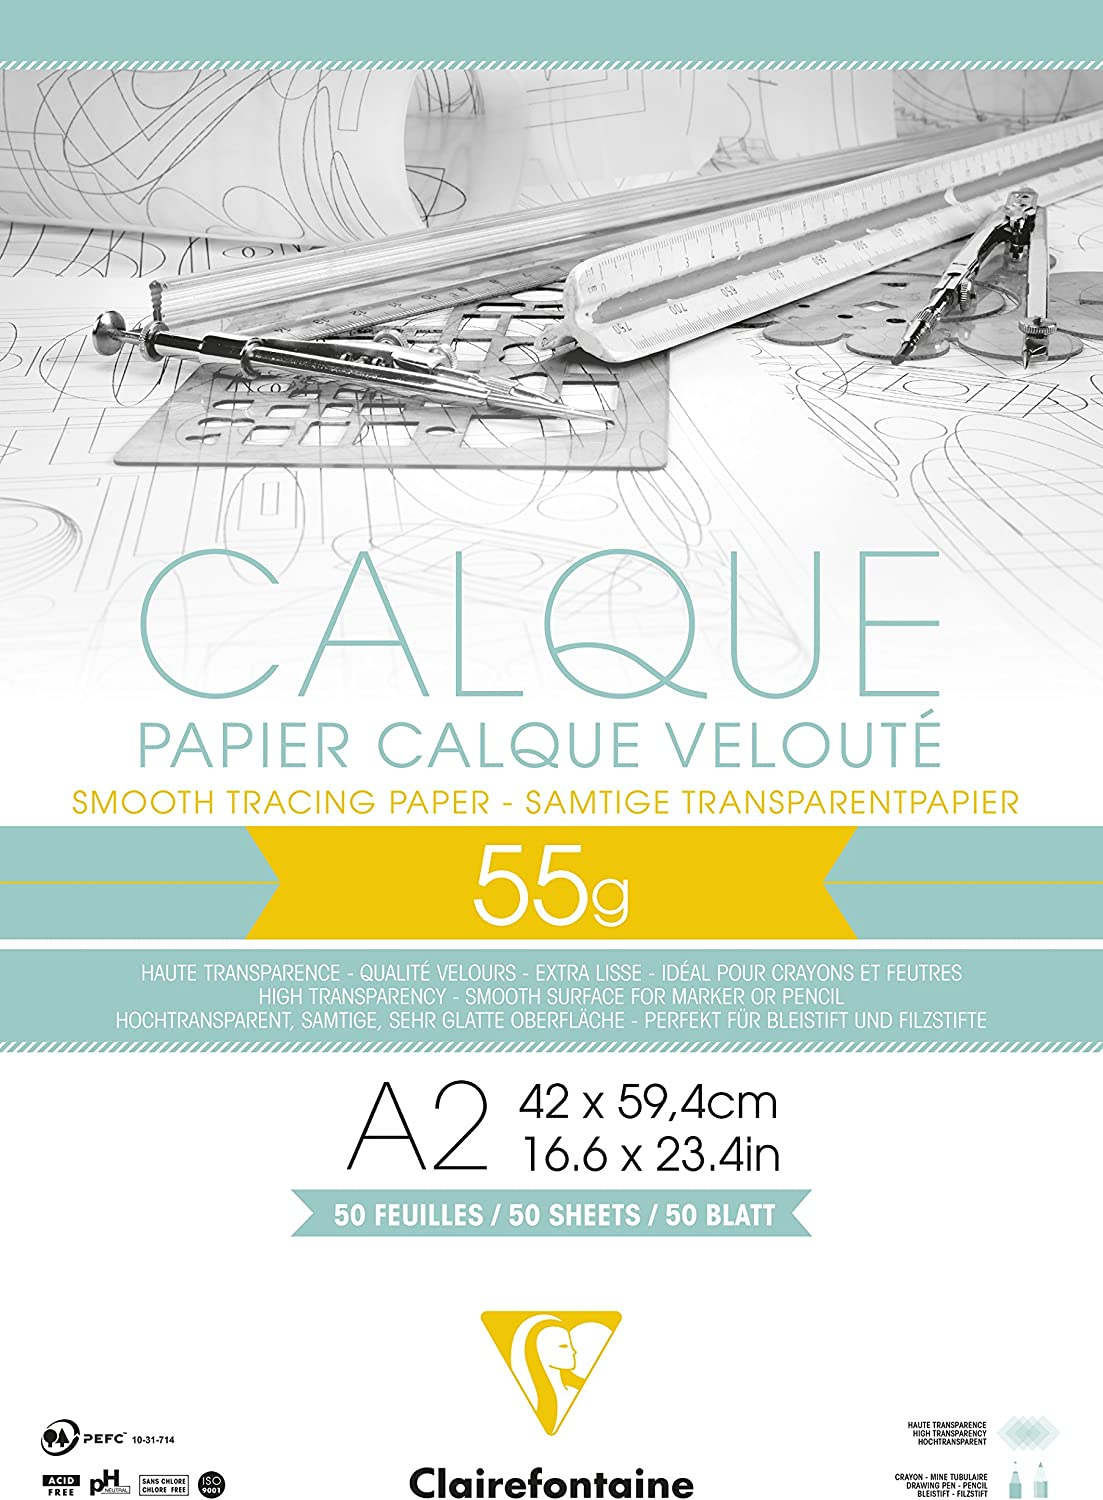 Clairefontaine A2 2021 Tracing Paper Pad g discount 55 50 Sheets